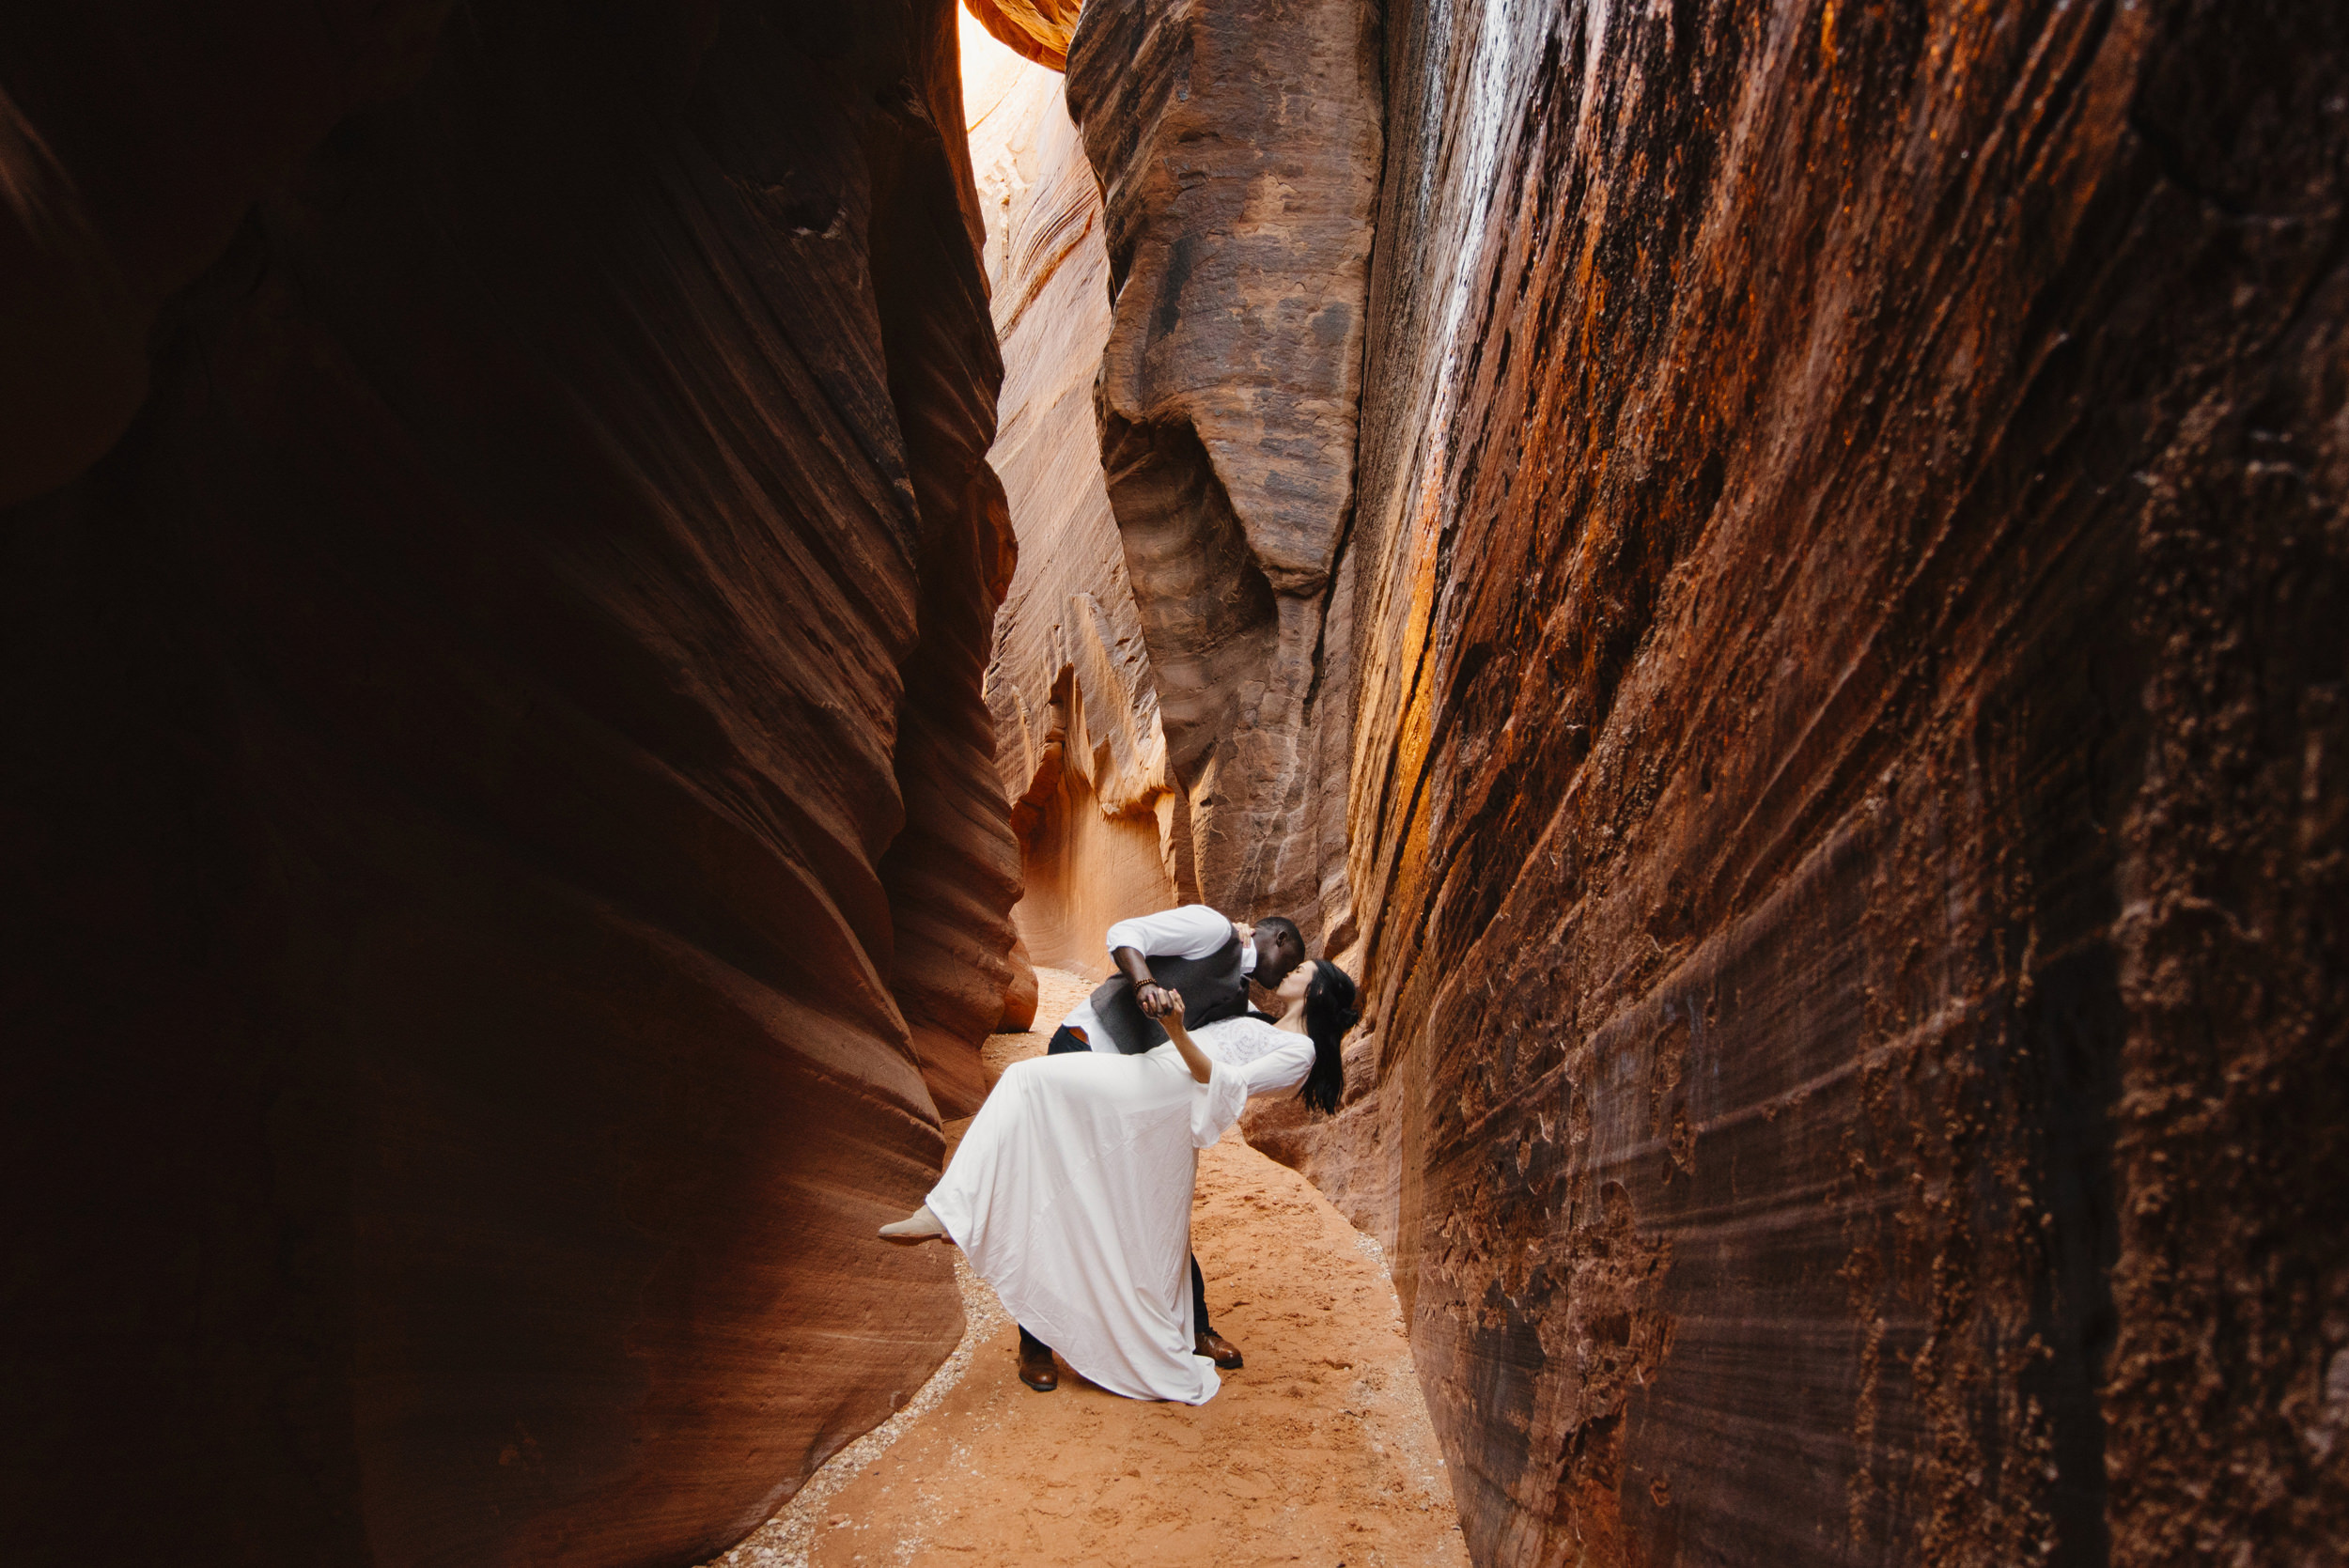 A man dips his wife and kisses her while dancing in a slot canyon during their Antelope Canyon couples adventure photography session with Utah Destination Elopement Photographer Colby and Jess